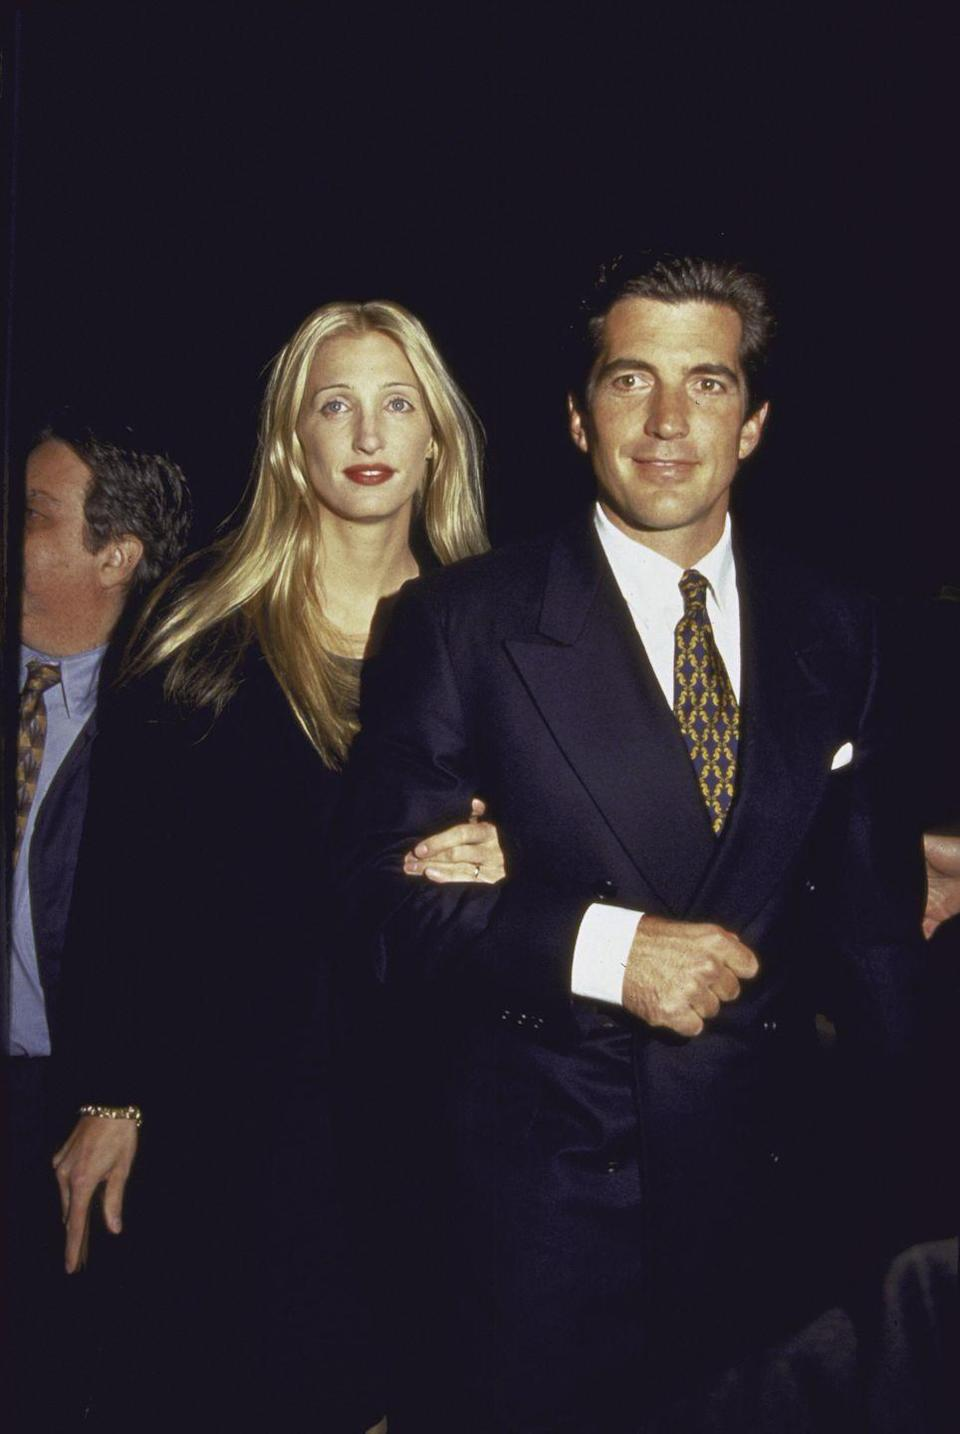 <p>John F. Kennedy Jr. and his wife, Carolyn Bessette, arrive at <em>George</em> magazine's second anniversary party in 1997. The late President's son founded the political-lifestyle publication in 1995. </p>